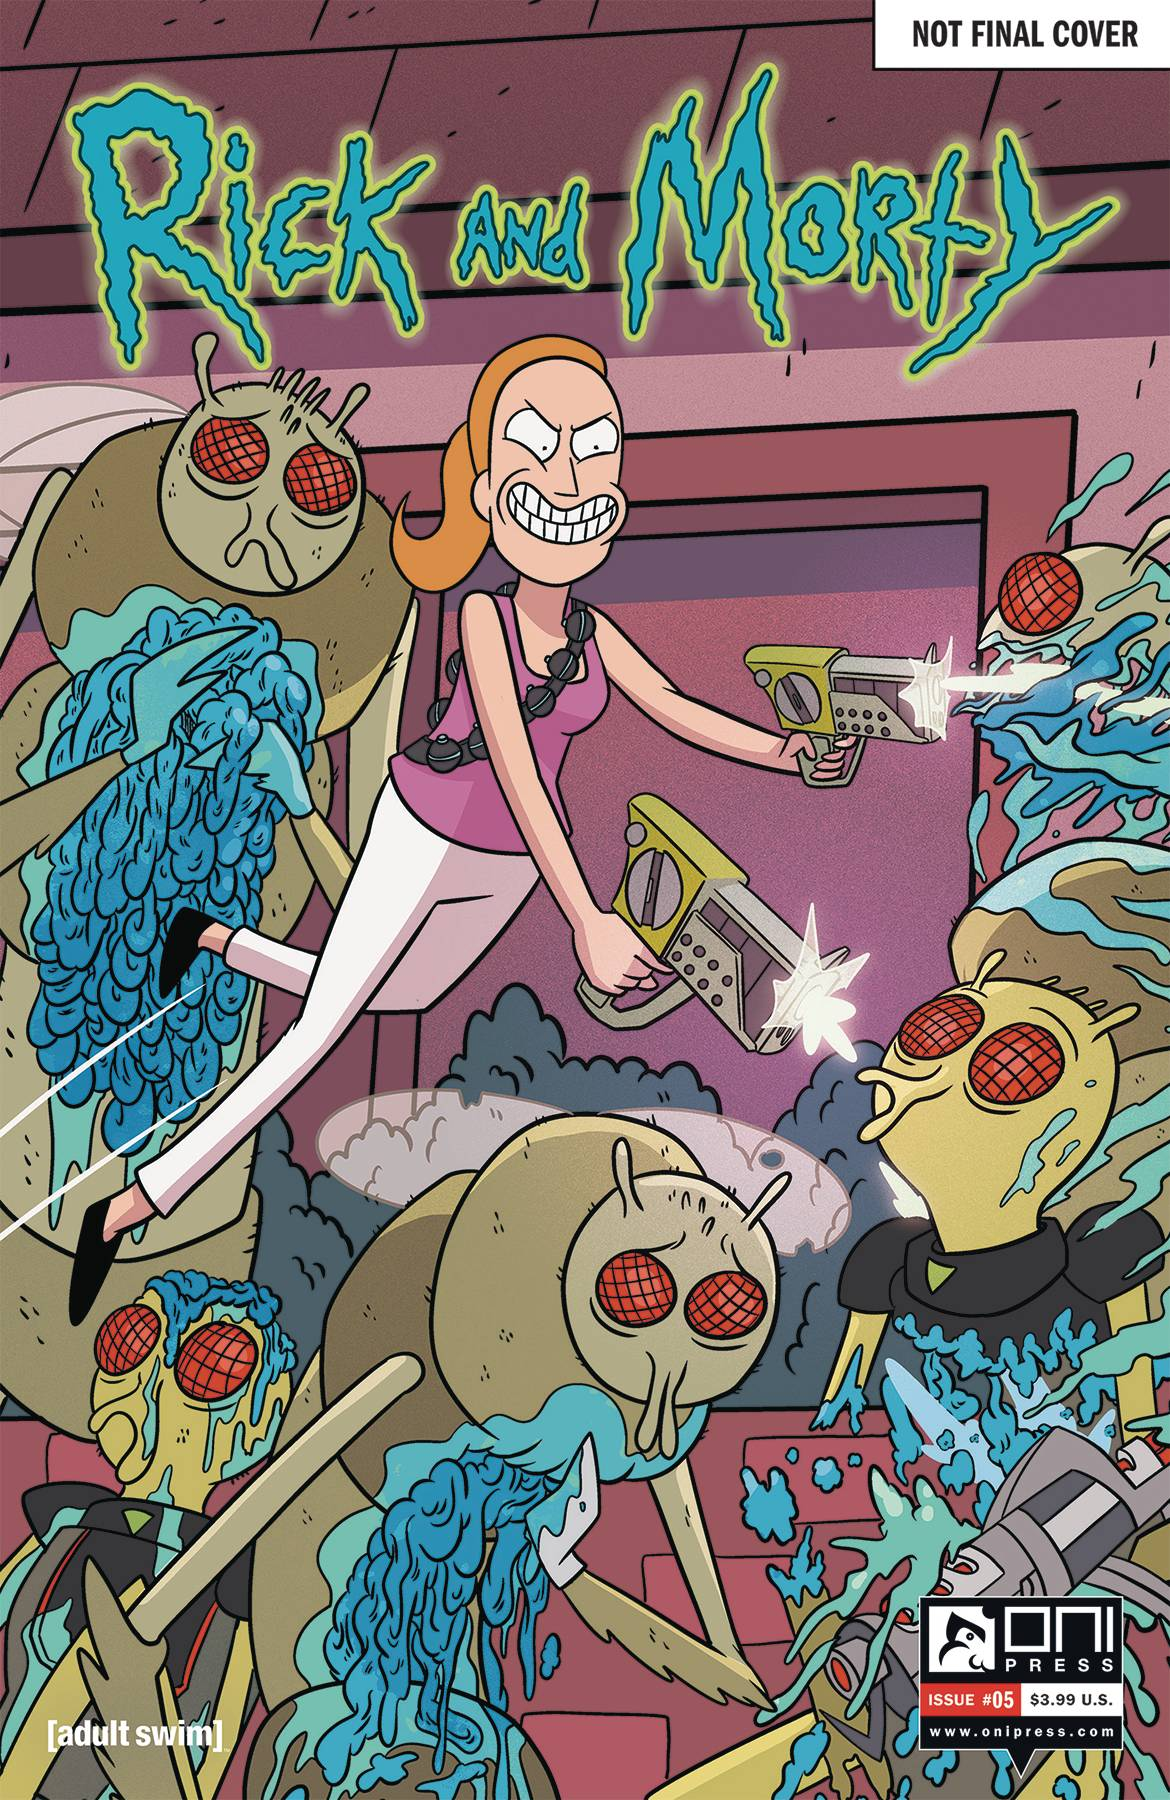 RICK & MORTY 5 50 ISSUES SPECIAL VAR.jpg